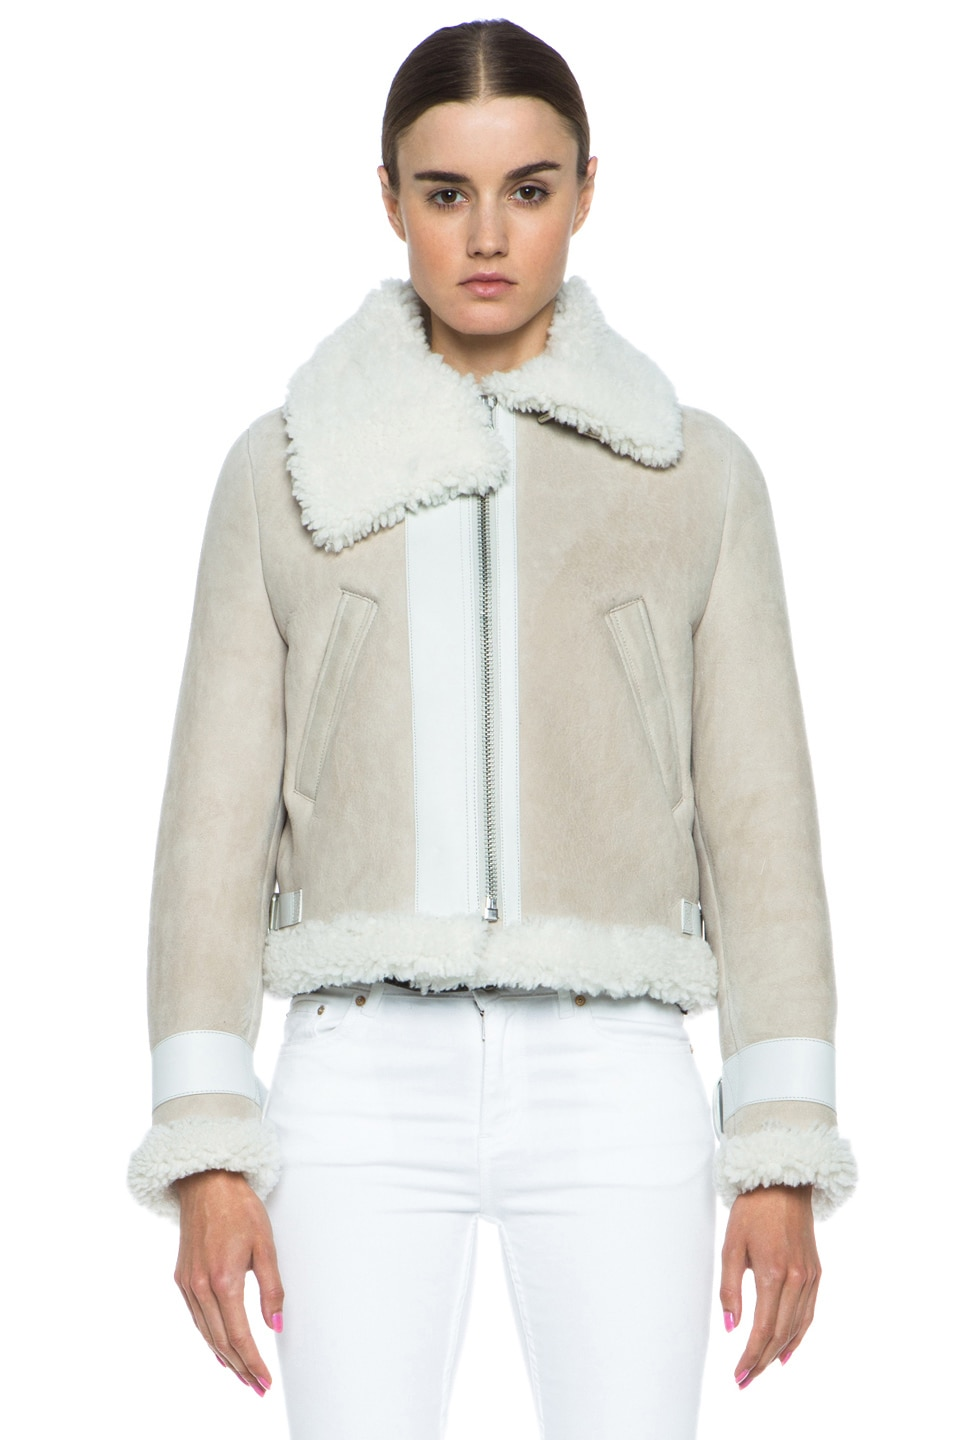 shearling sheepskin coats for wo with White Shearling Coat 6060 on 443182419567447148 also DisplayProduct jsp in addition WO9gaM 0fgABDgZZ further Prada Womenswear Fall Winter 2014 further White Shearling Coat 6060.